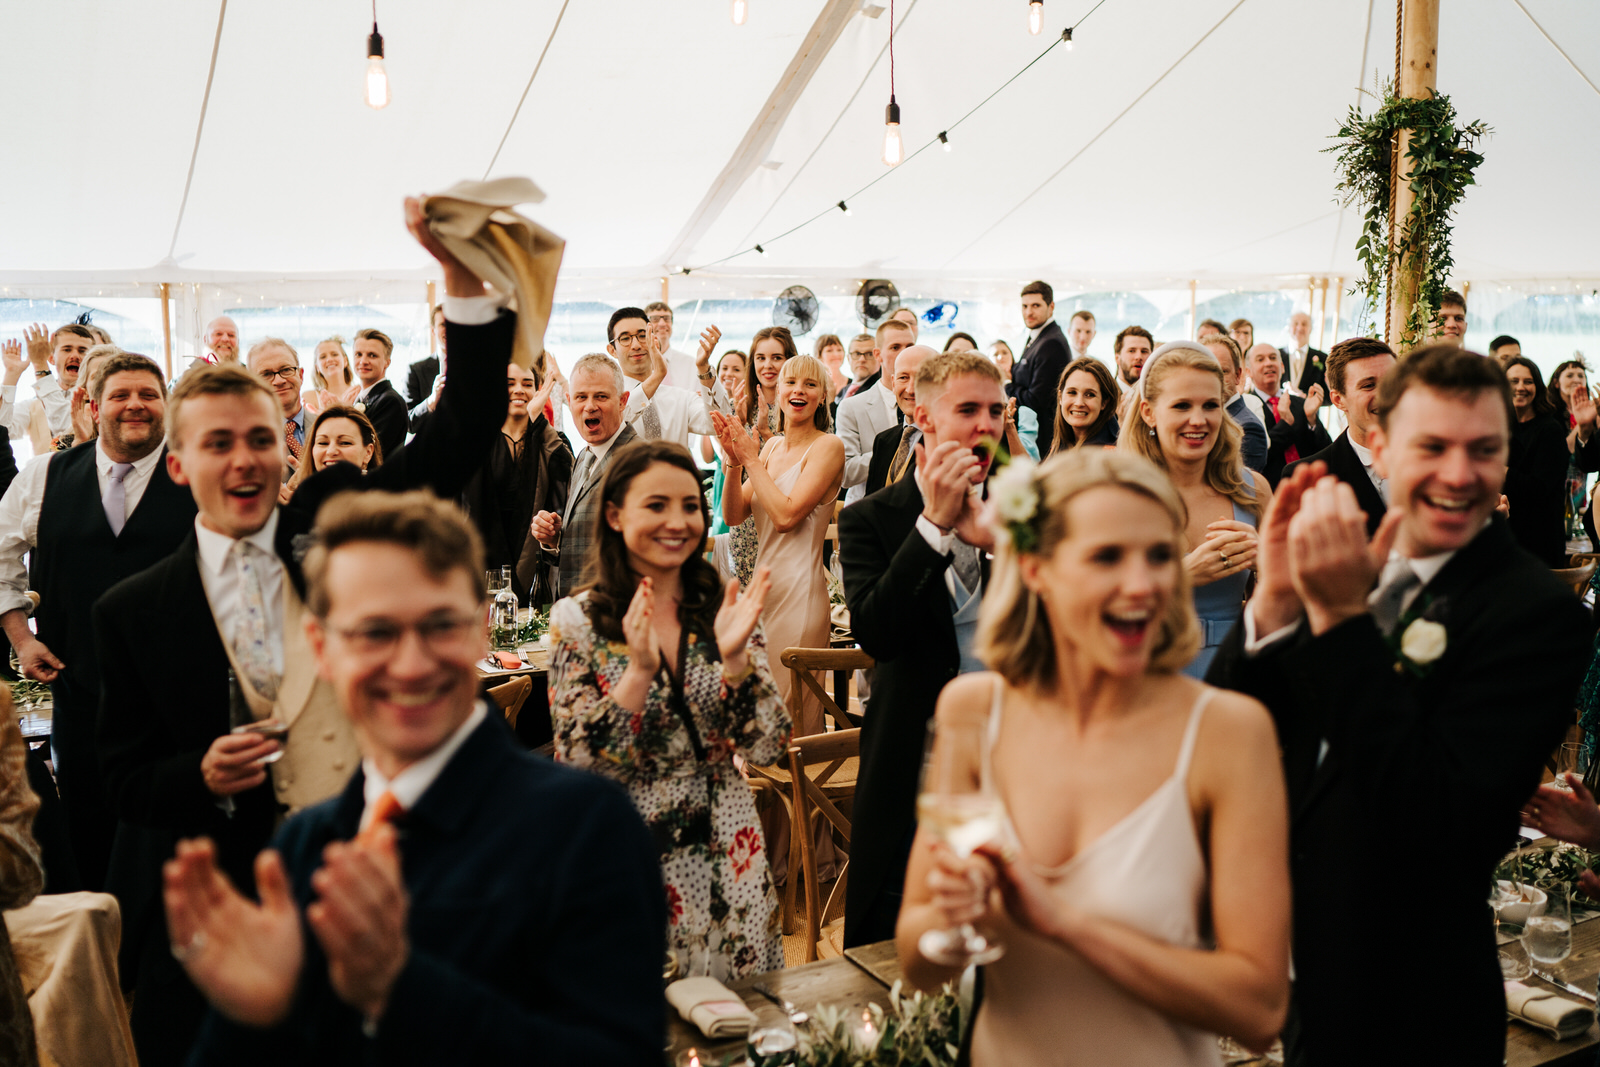 Guests cheer, smile and clap as bride and groom make their way to their table inside wedding marquee